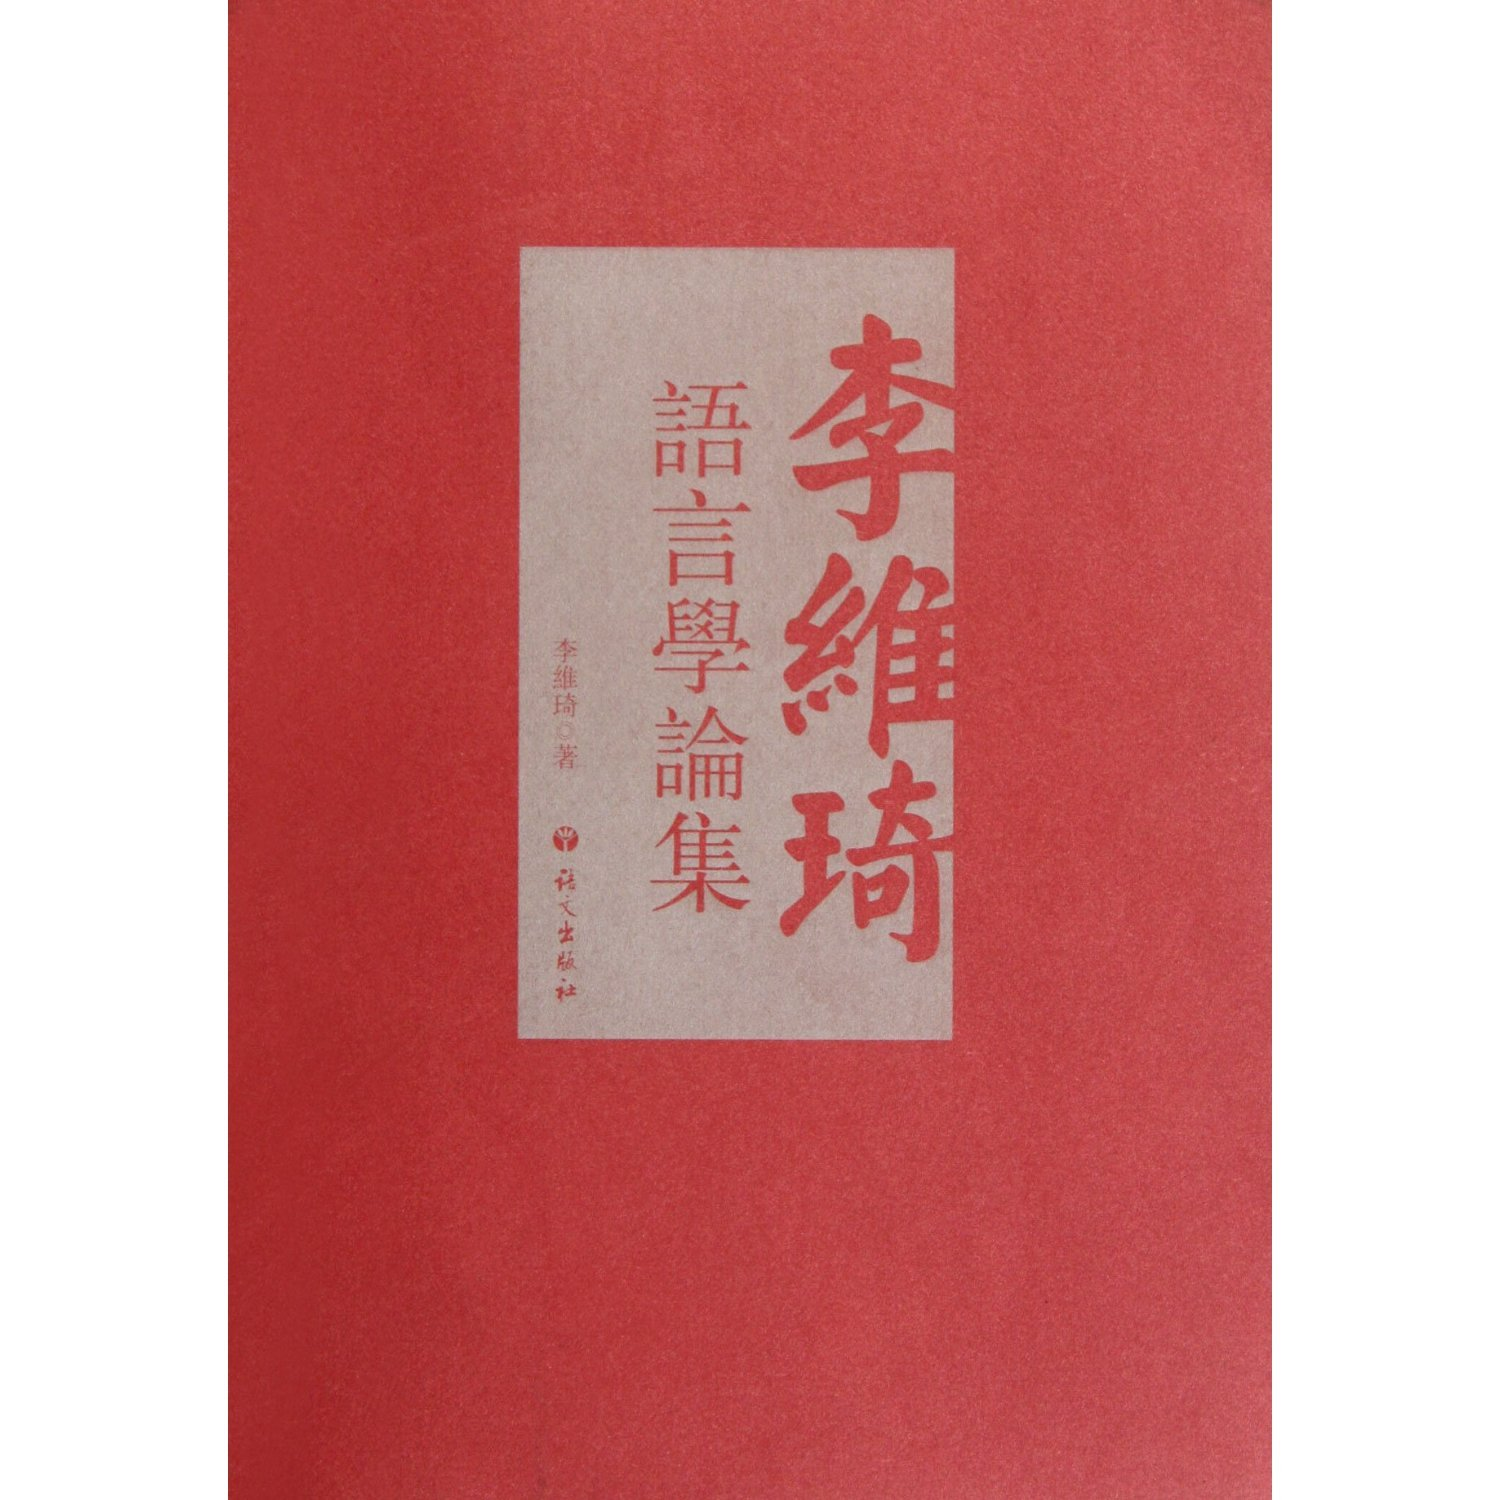 Linguistic Papers by Li Weiqi (Chinese Edition) ebook